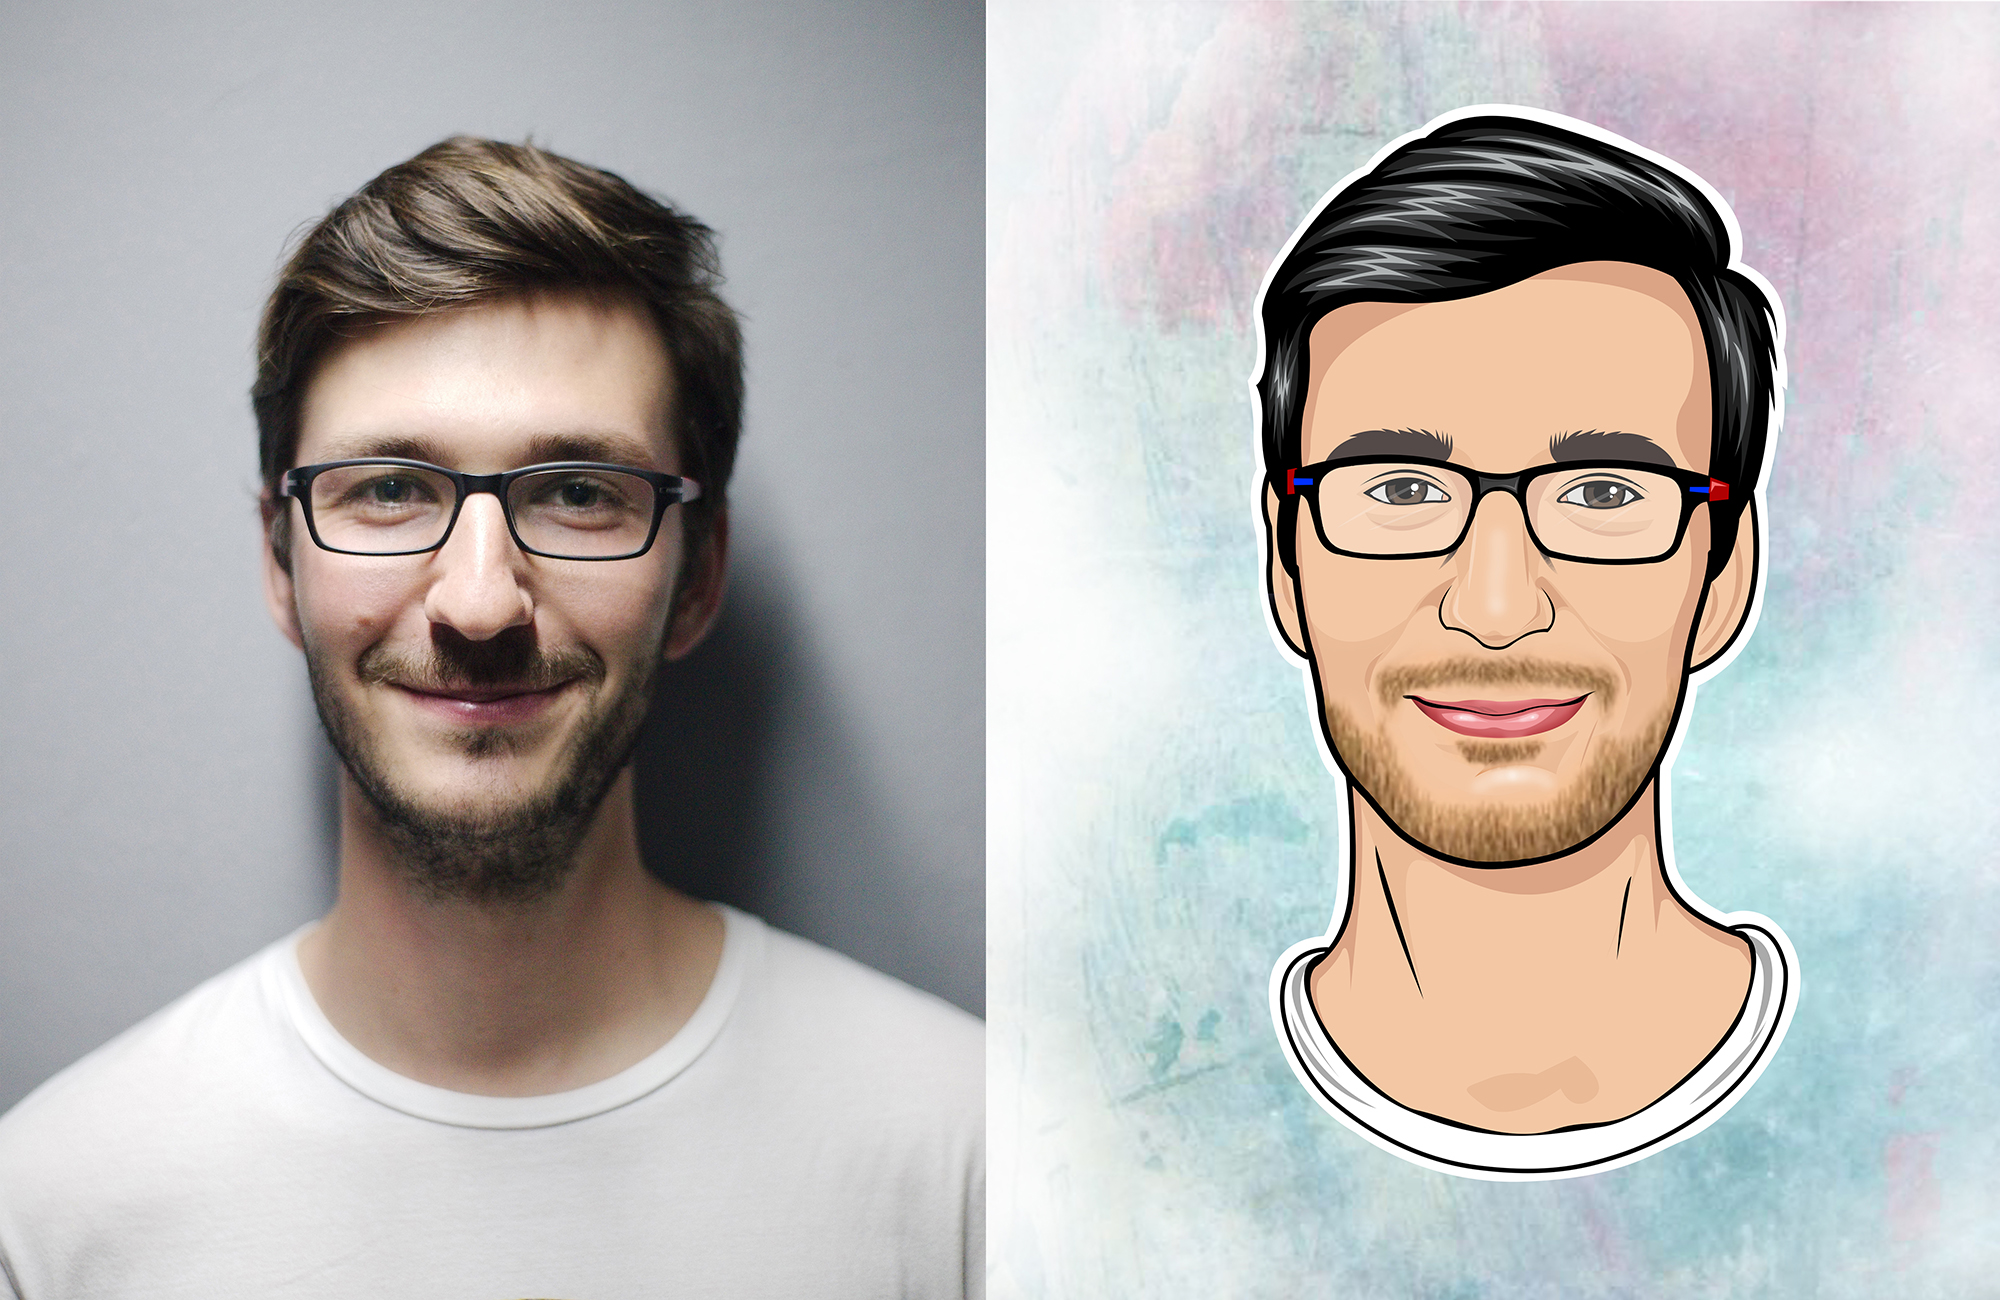 Draw Your Amazing Cartoon Portrait